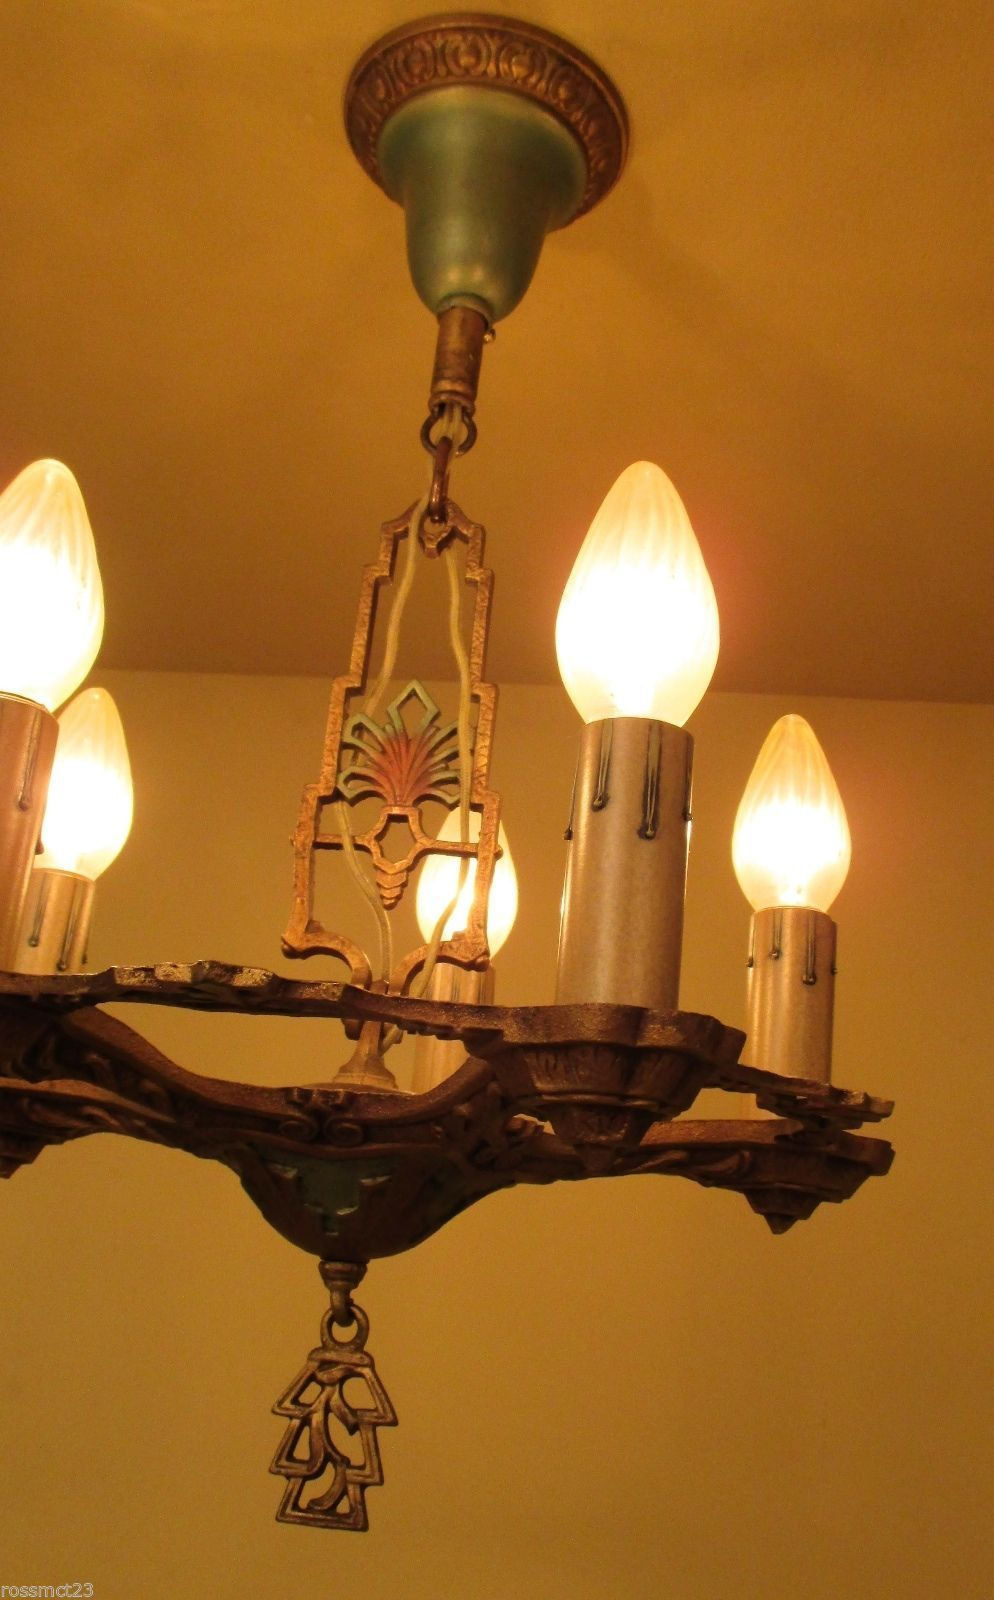 Collectible Sconce Light Fixtures | eBay & Vintage Lighting Matched 1930s LaSalle Set One Chandelier Two ...